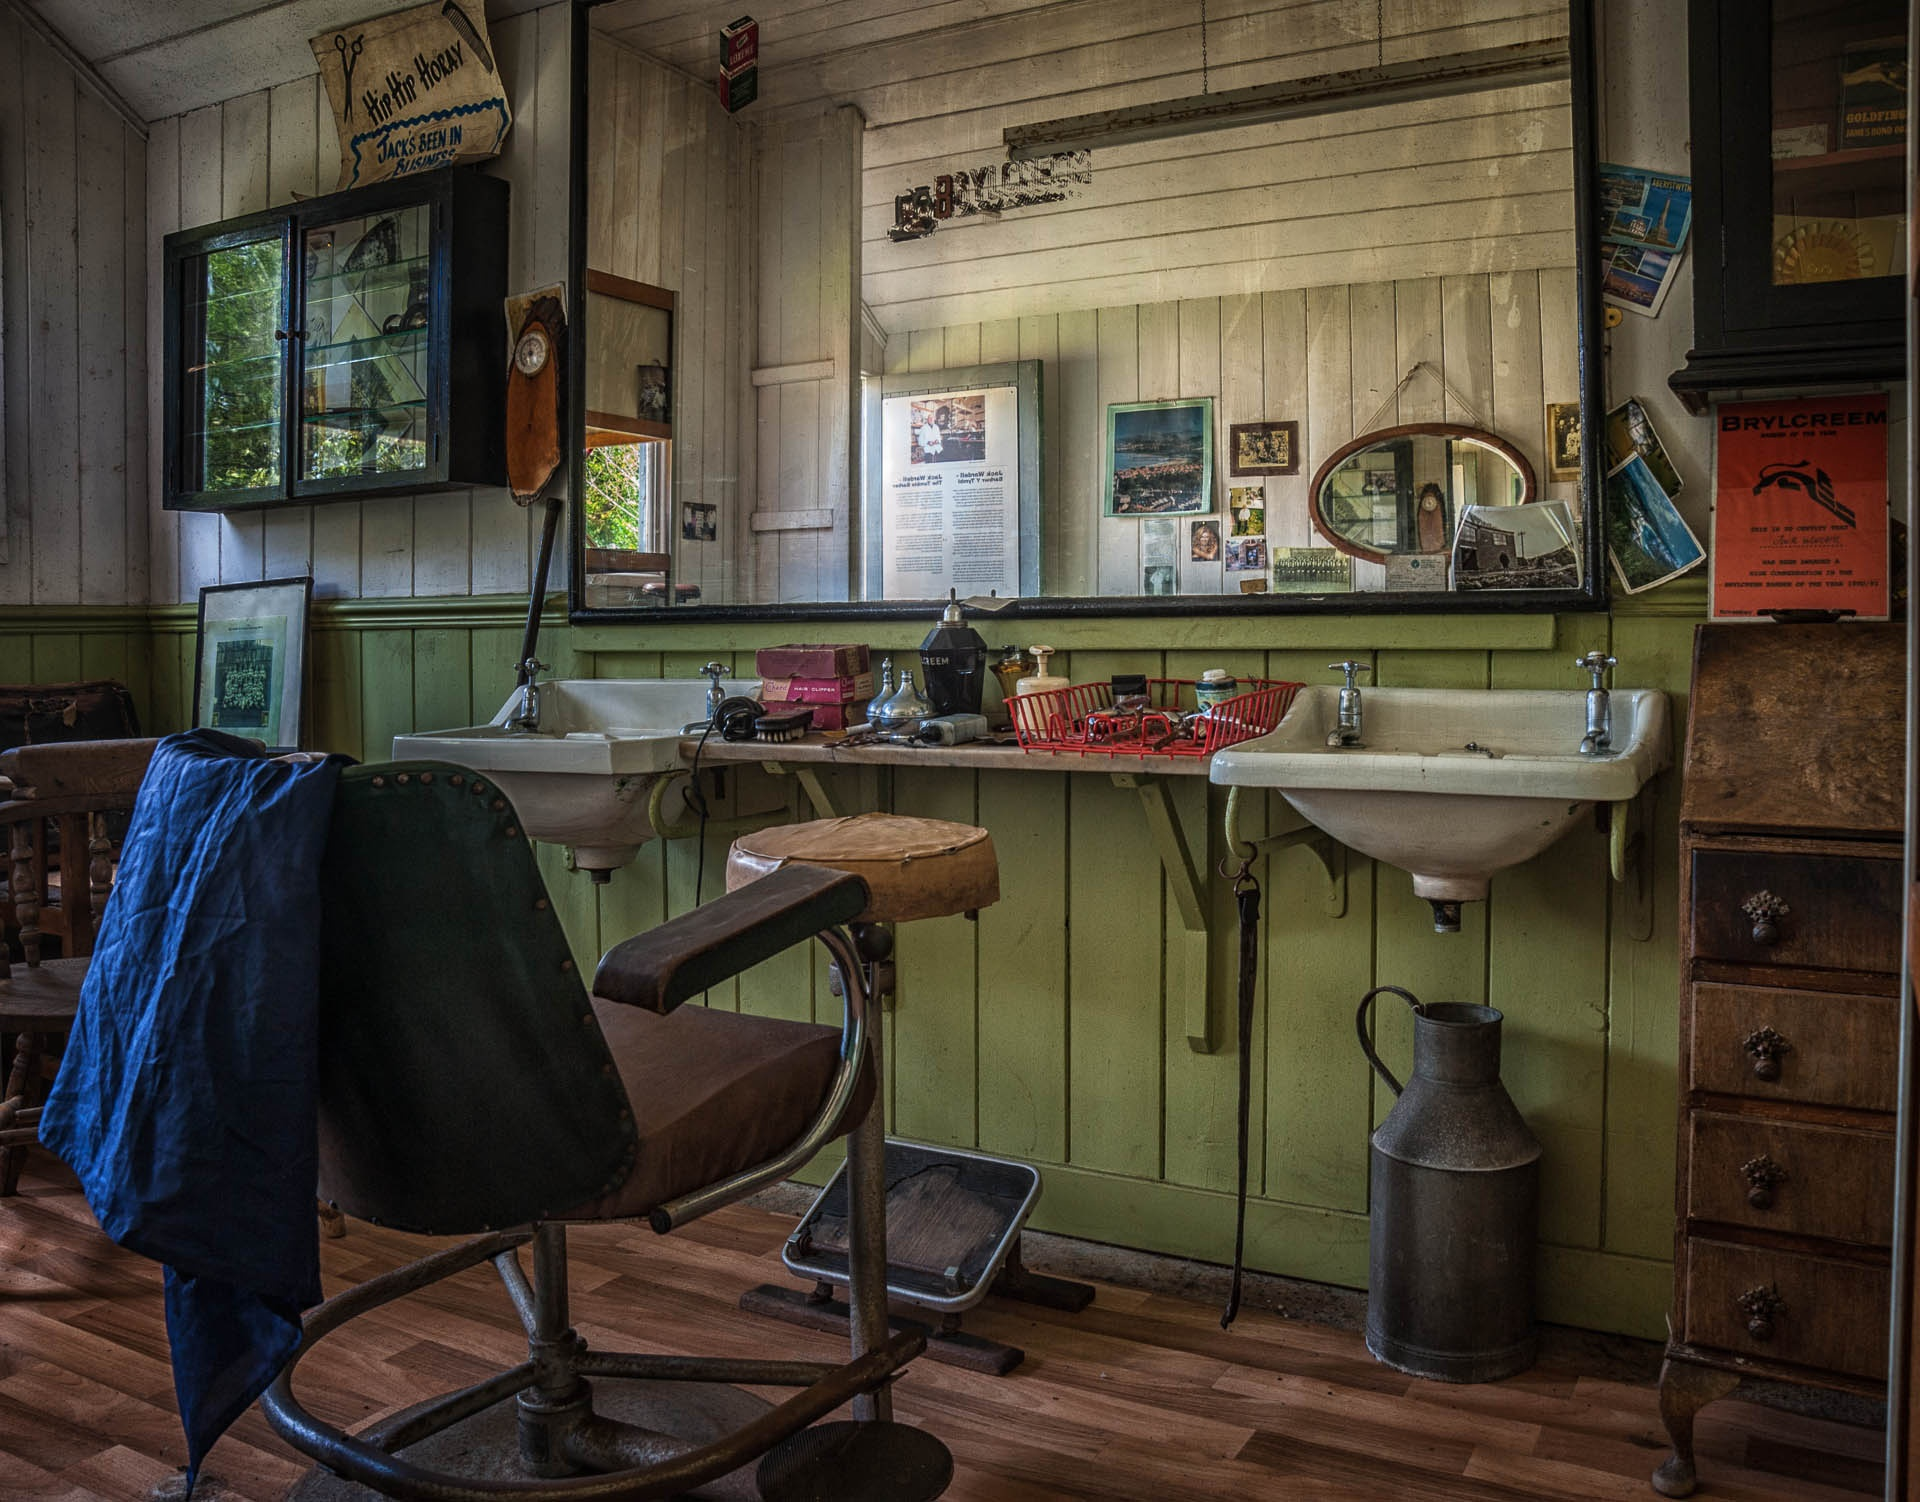 The Barber Shop by Clive Martin